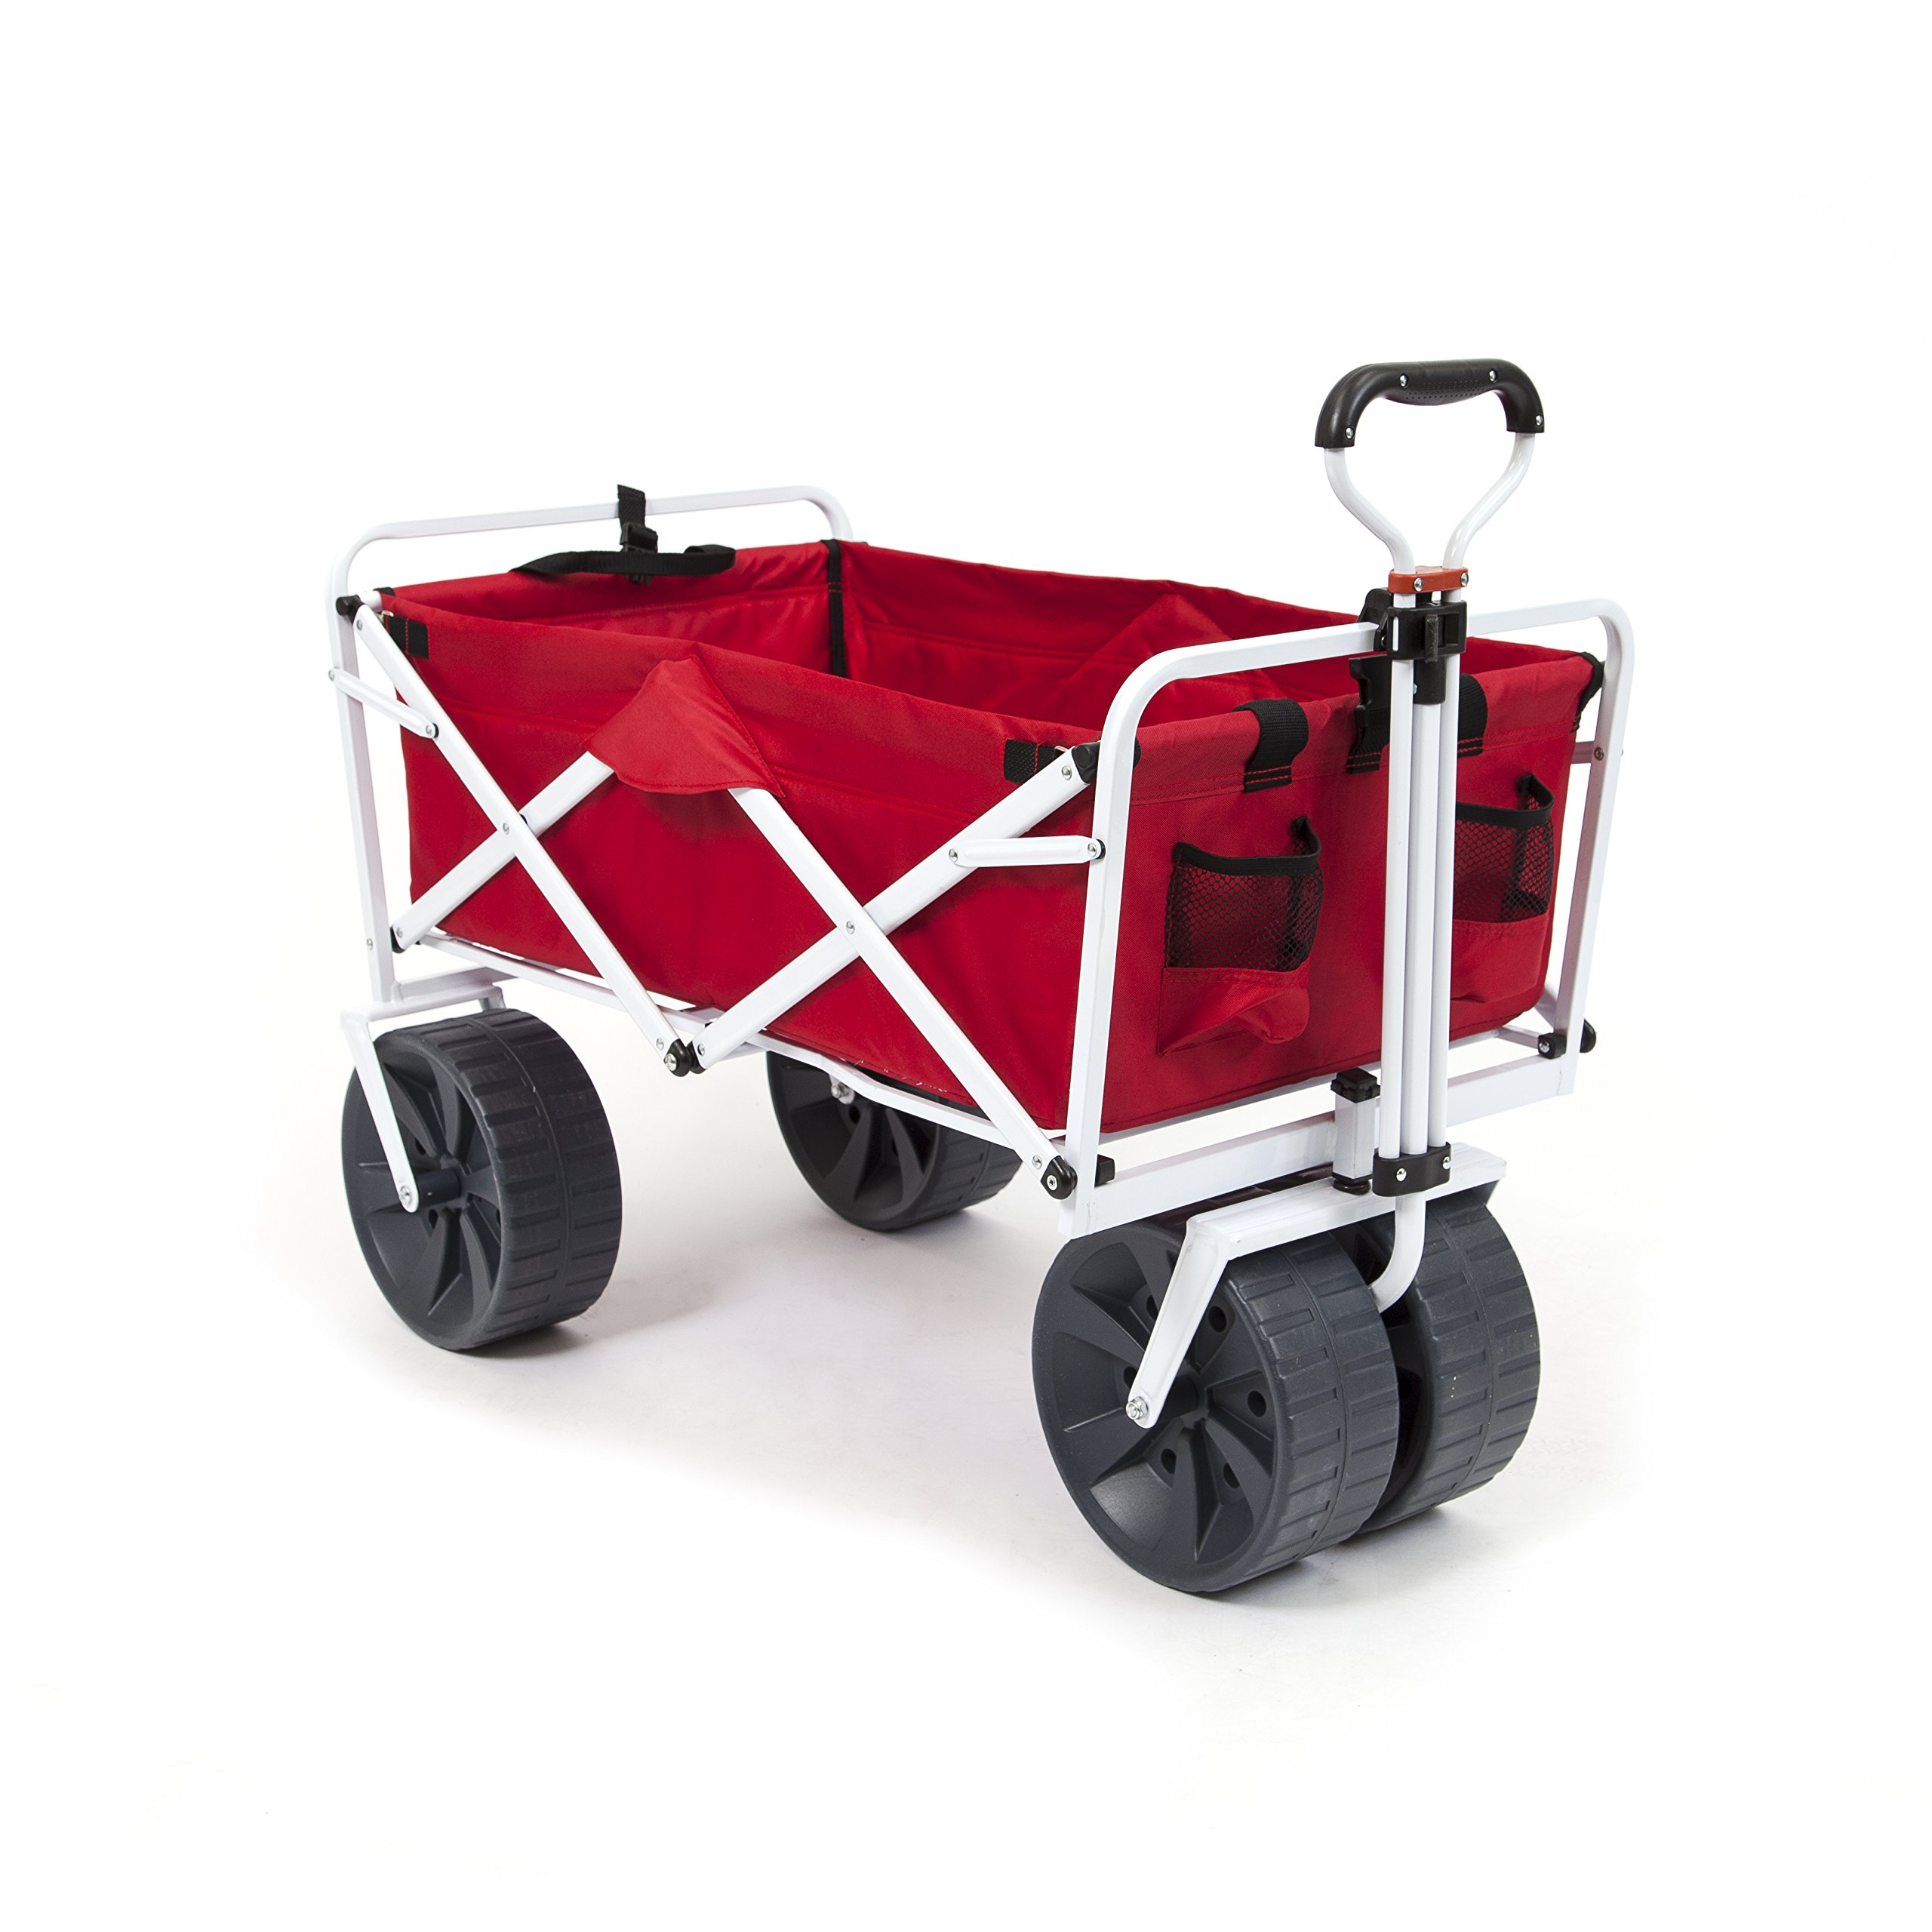 Mac Sports Heavy Duty Collapsible Folding All Terrain Utility Wagon Beach Cart (Red/White) … by Mac Sports